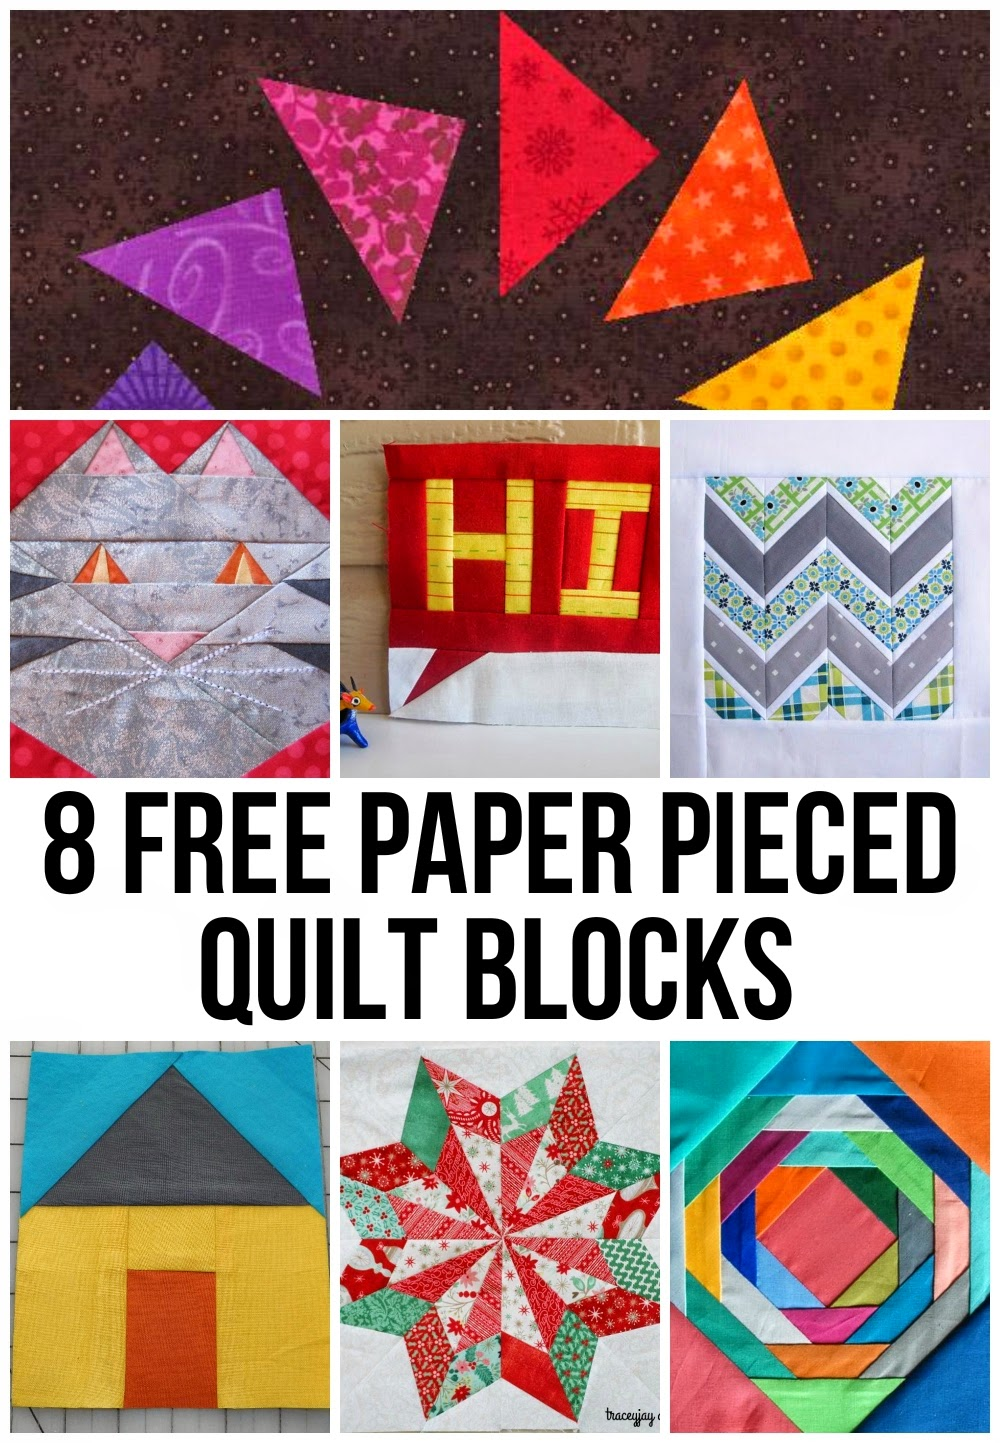 Free Paper Piecing Patterns Quilt Blocks : Meadow Mist Designs: Meadow Mist Designs News